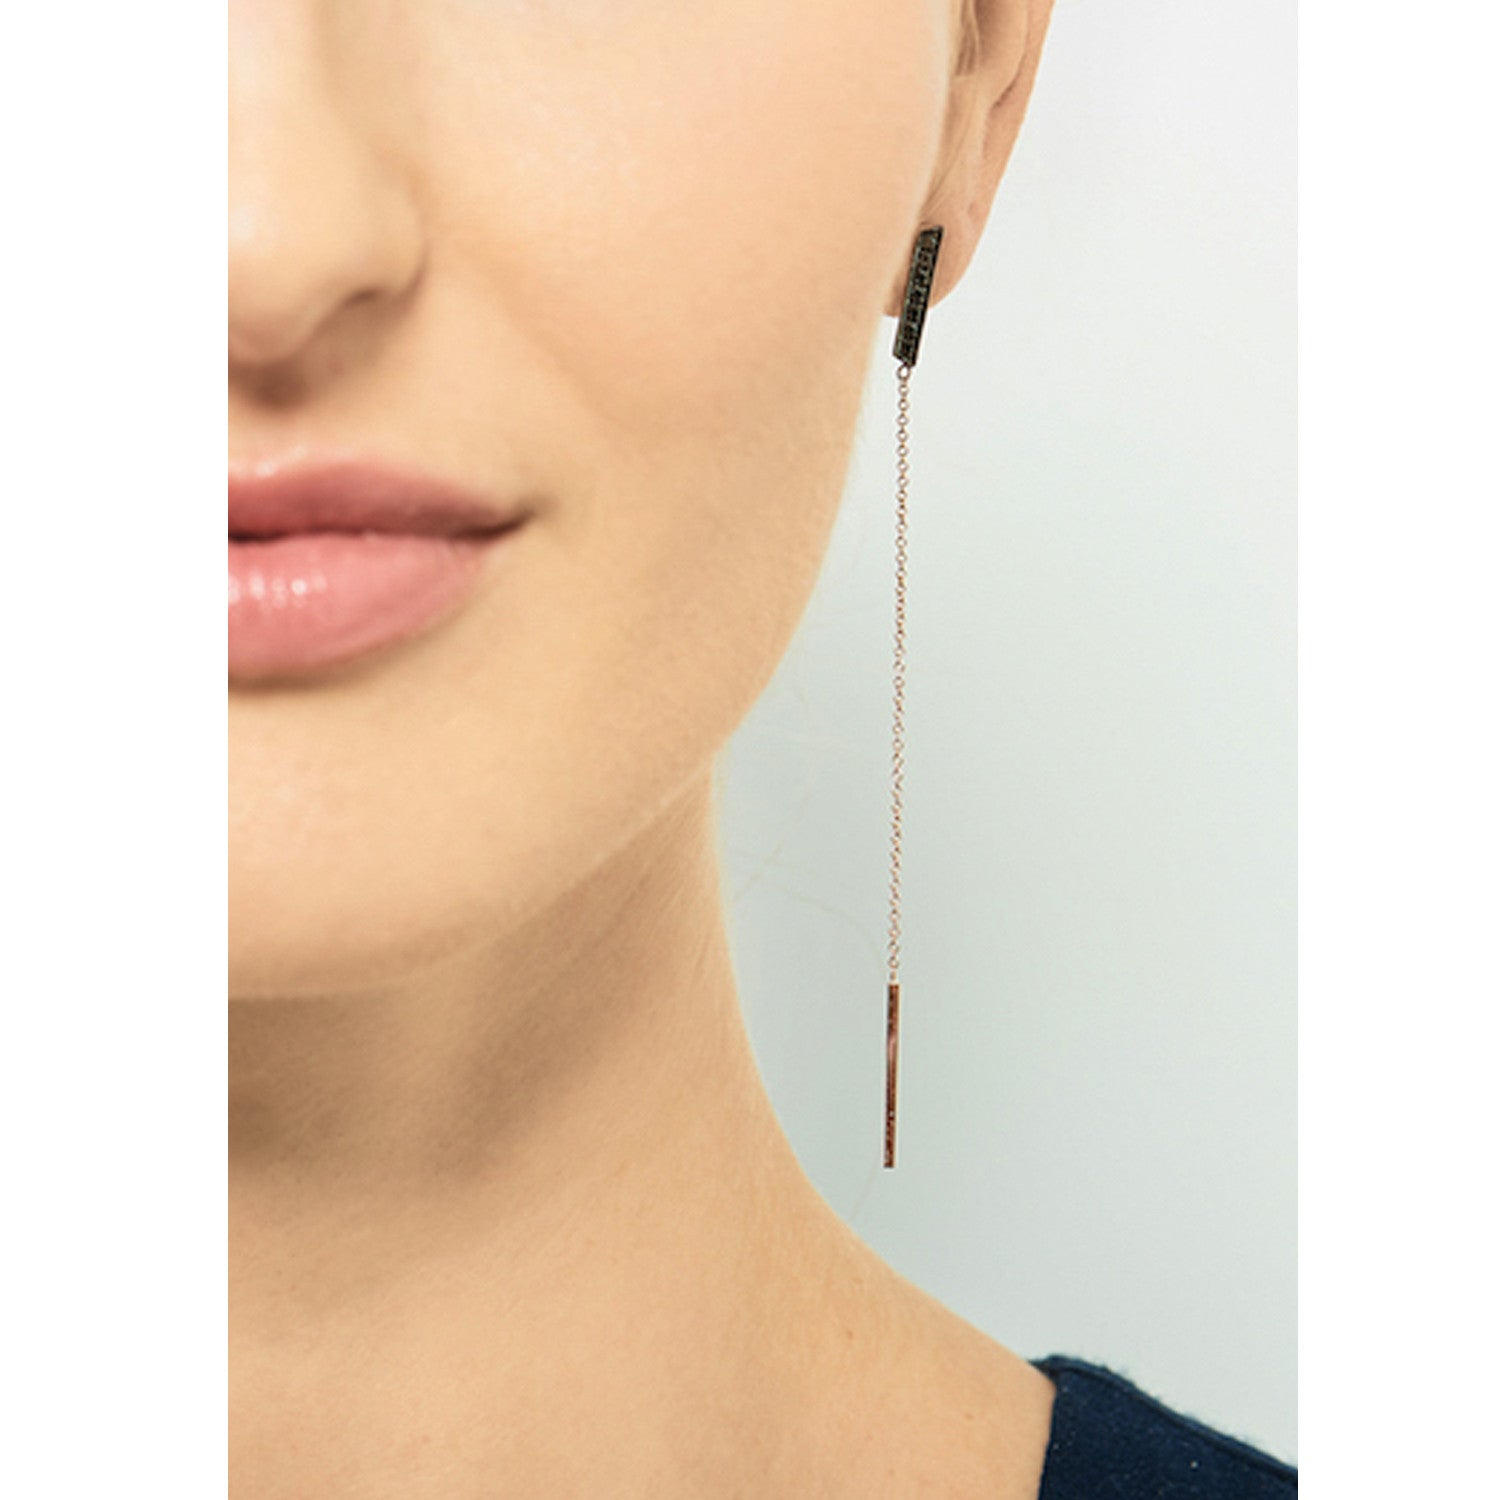 Selin Kent 14K Marlene Earrings with Rubies and Black Diamonds - On Model